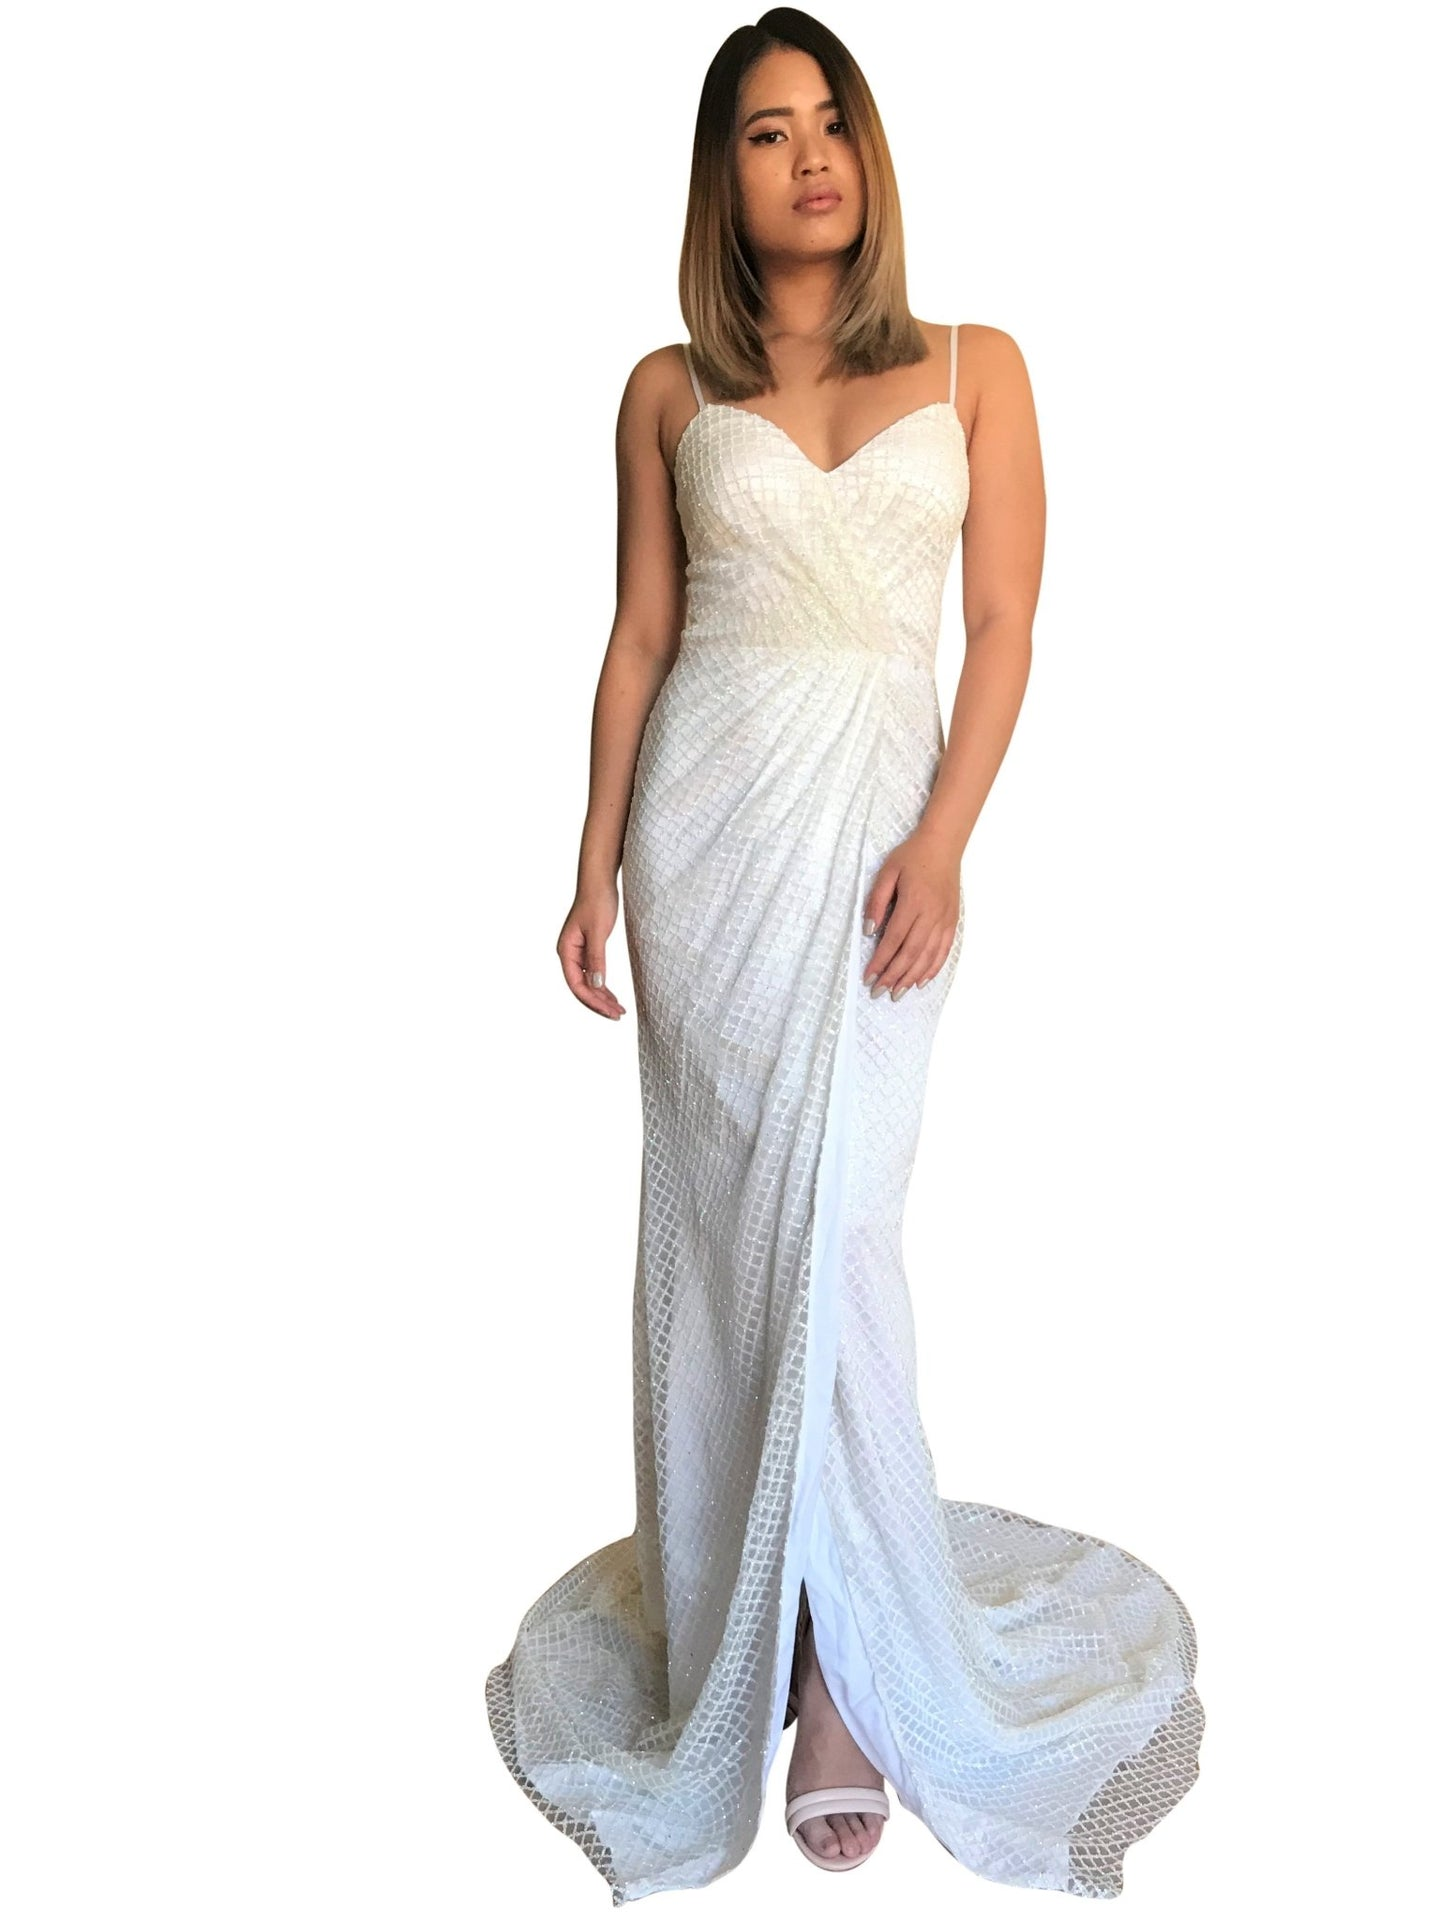 EVALINA | Wrap Look White Glitter Evening Dress - All Products Envious Bridal